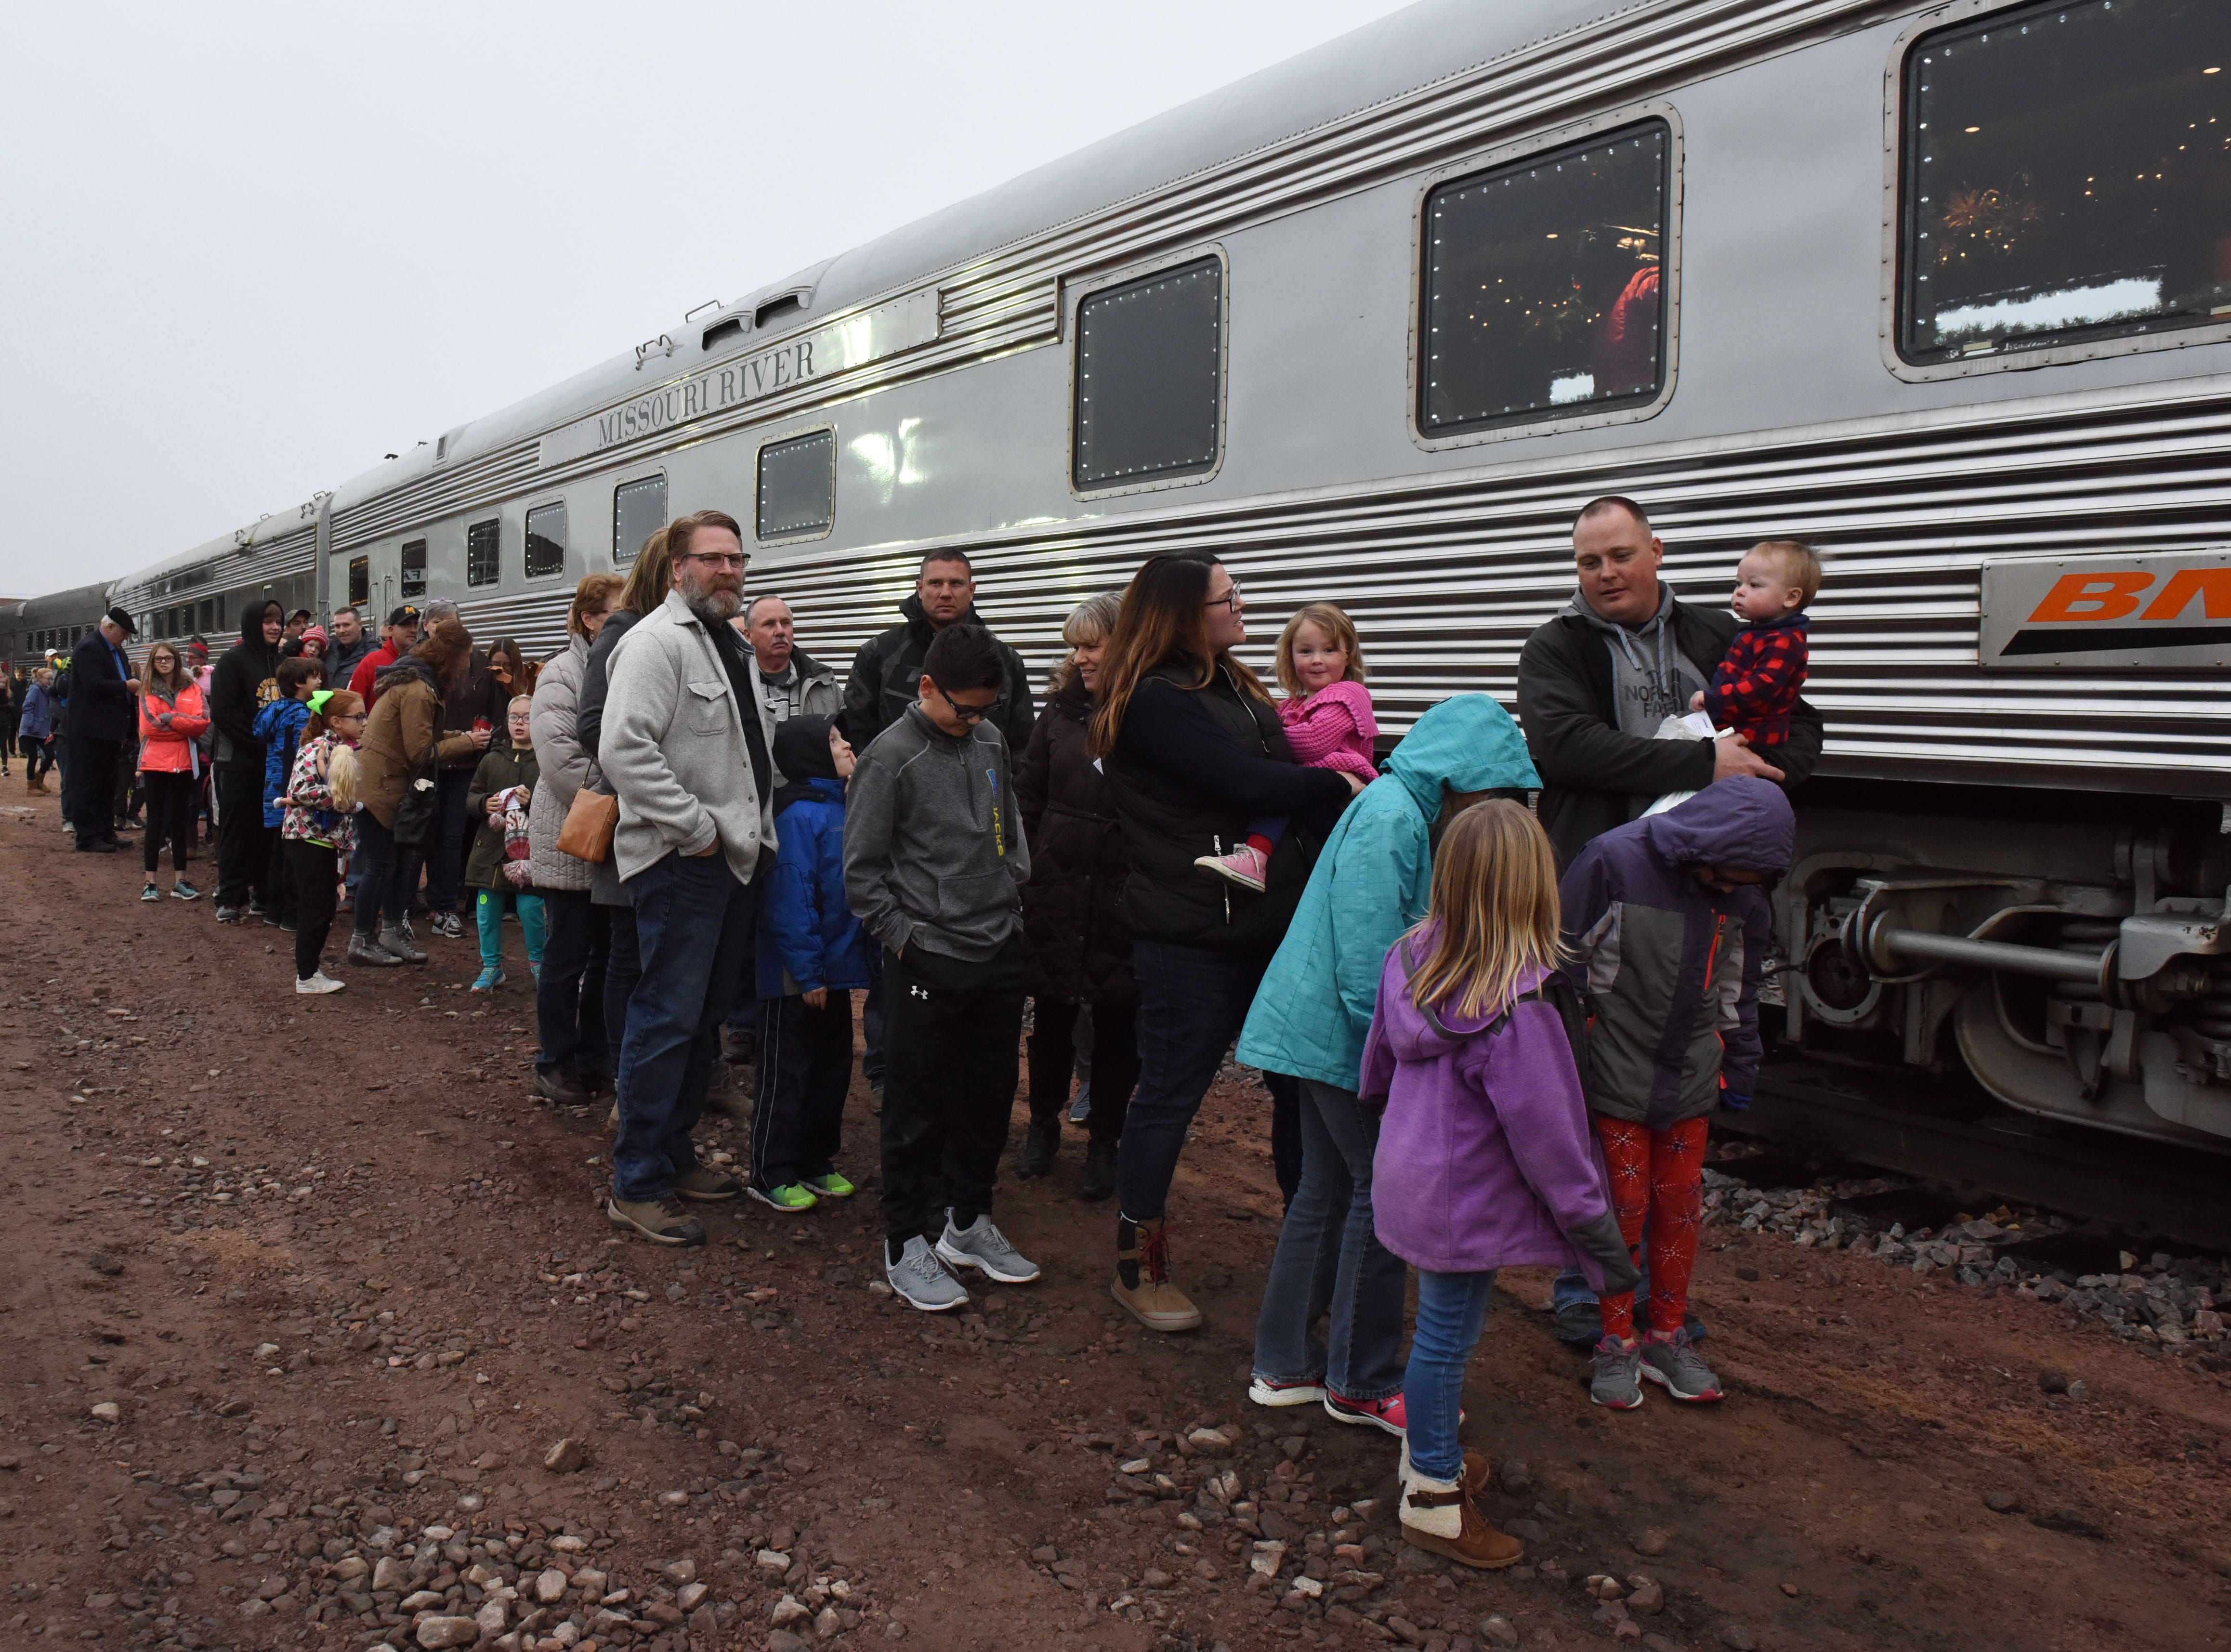 People board the BNSF train in Sioux Falls, S.D., Thursday, Nov. 29, 2018.